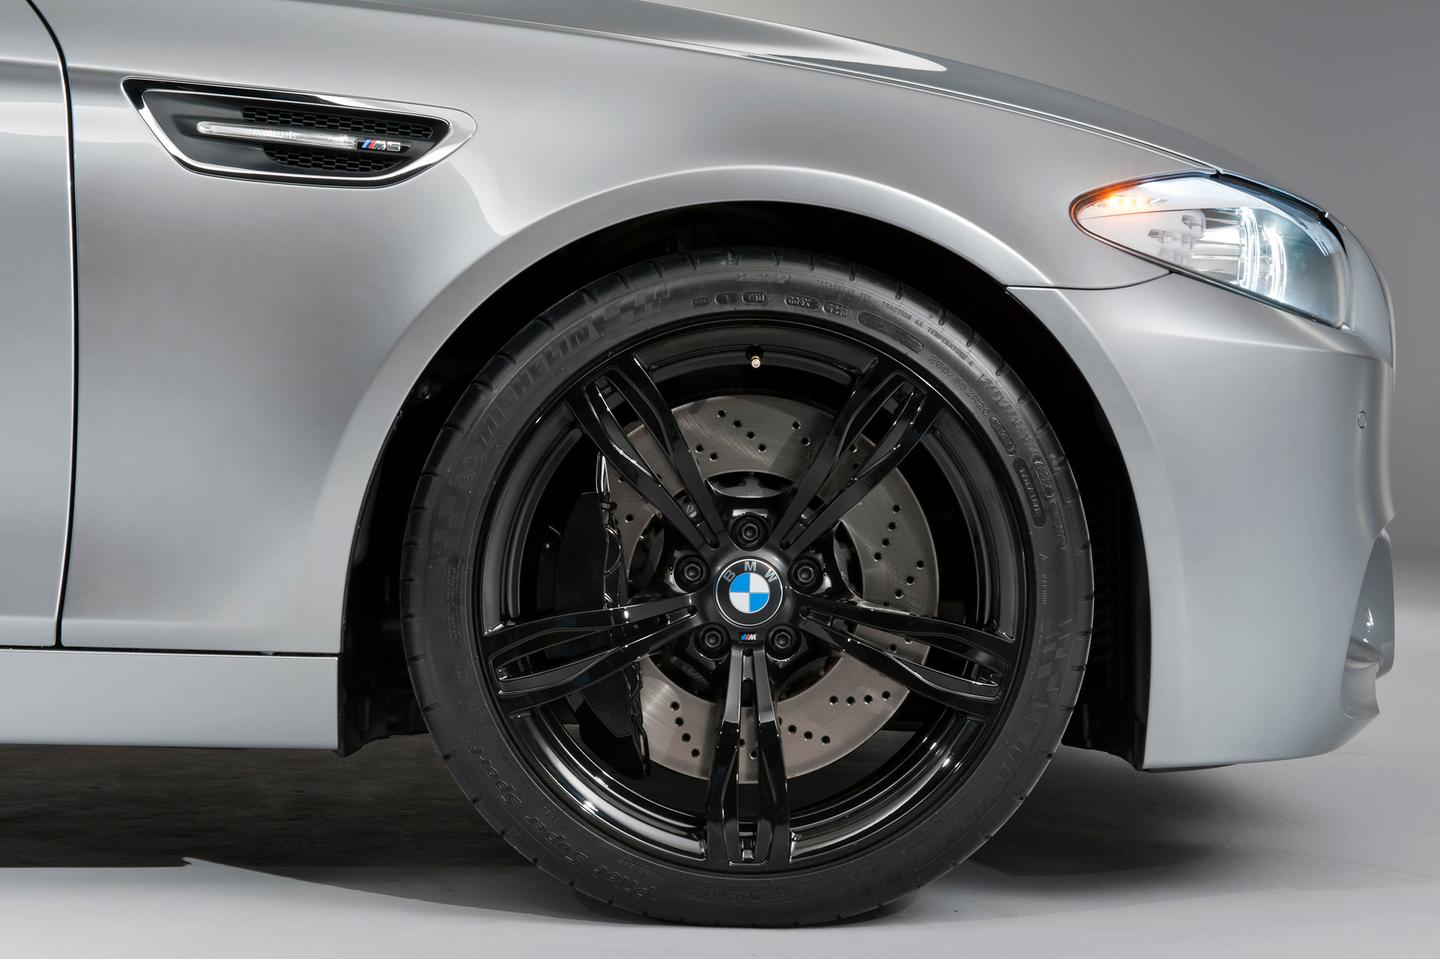 BMW's M5 concept is based on the F10 5-series